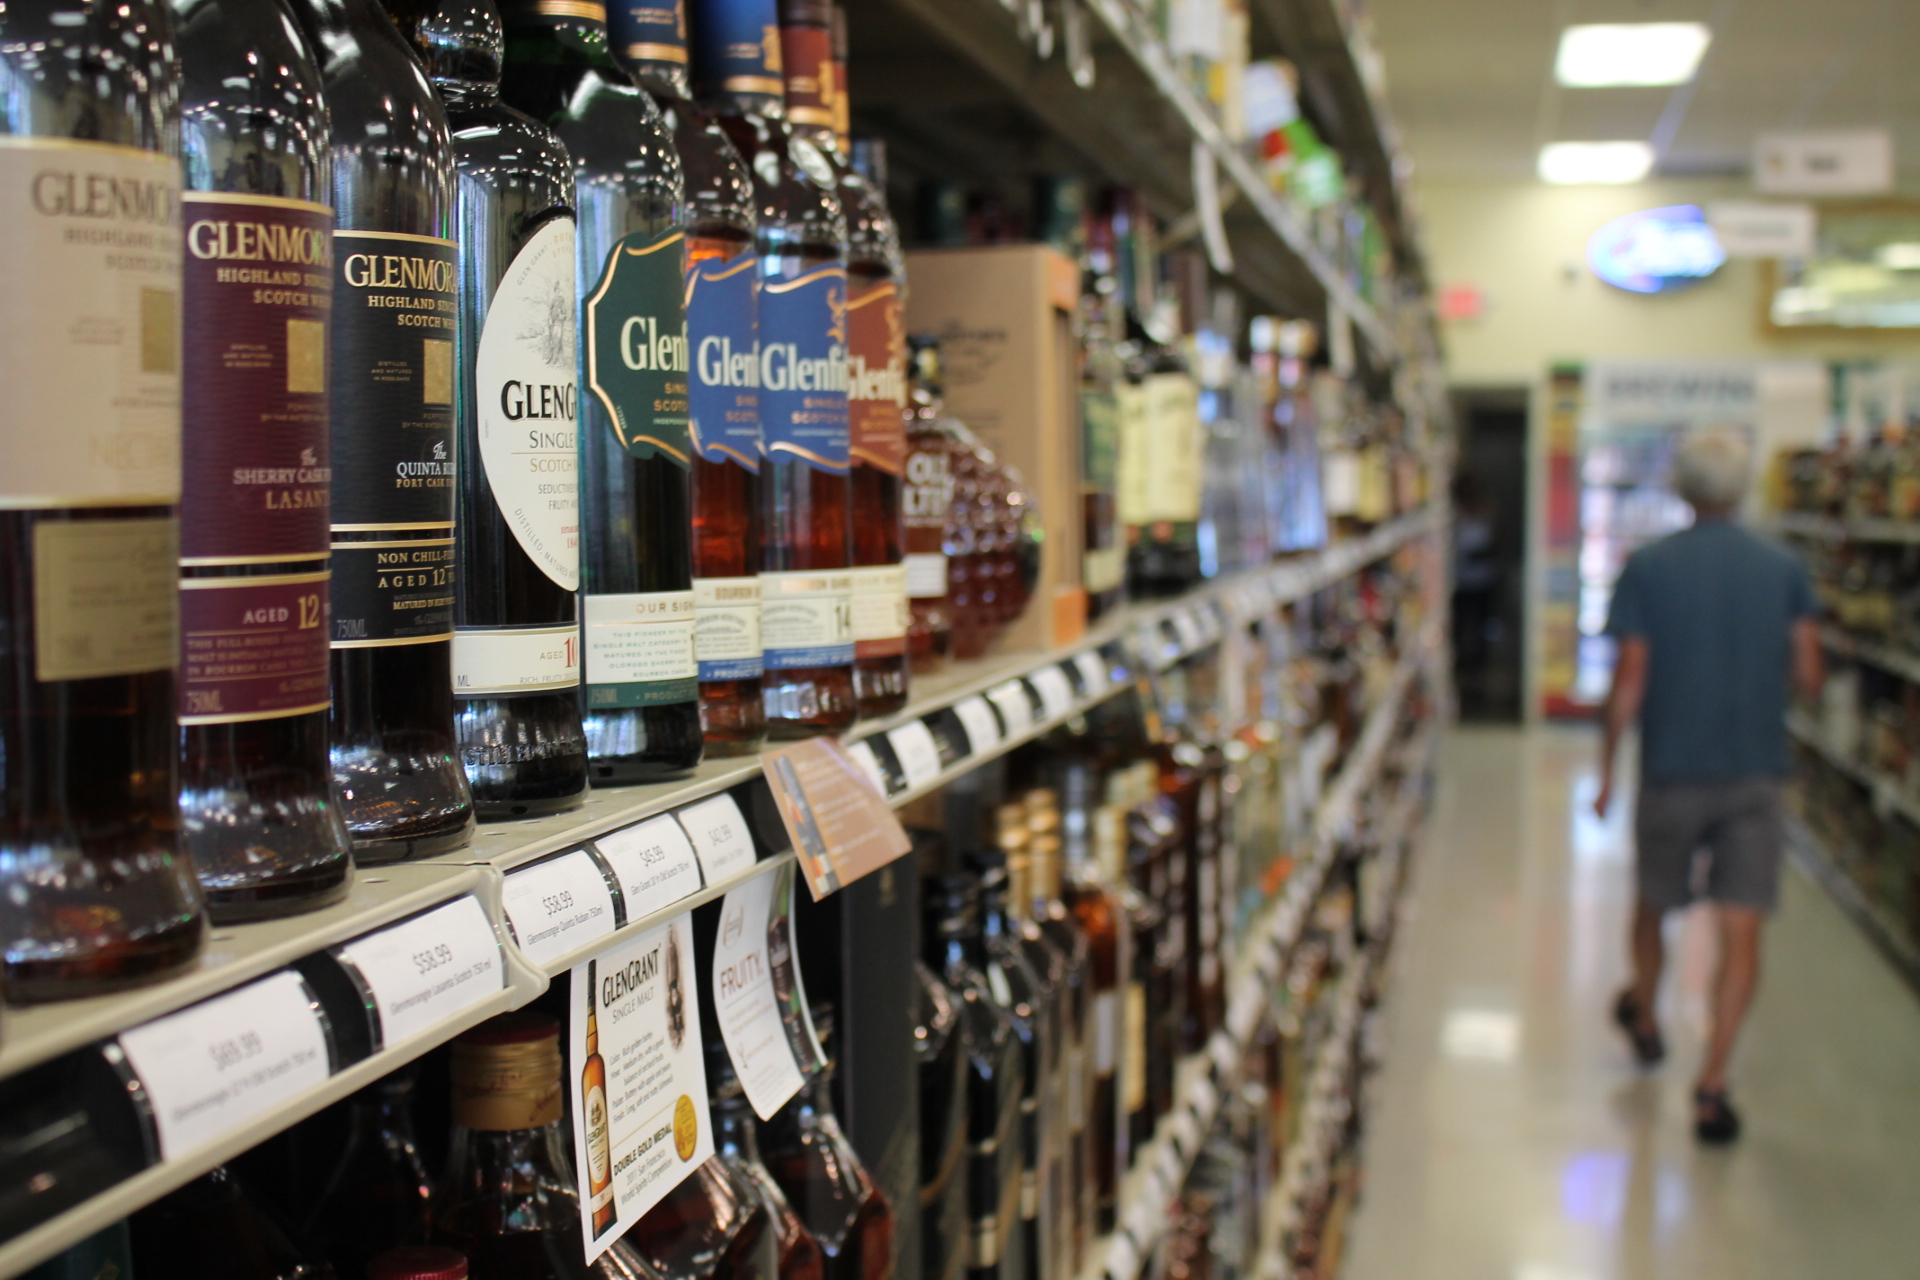 Judge Dismisses Lawsuit Challenging Connecticut Liquor Laws